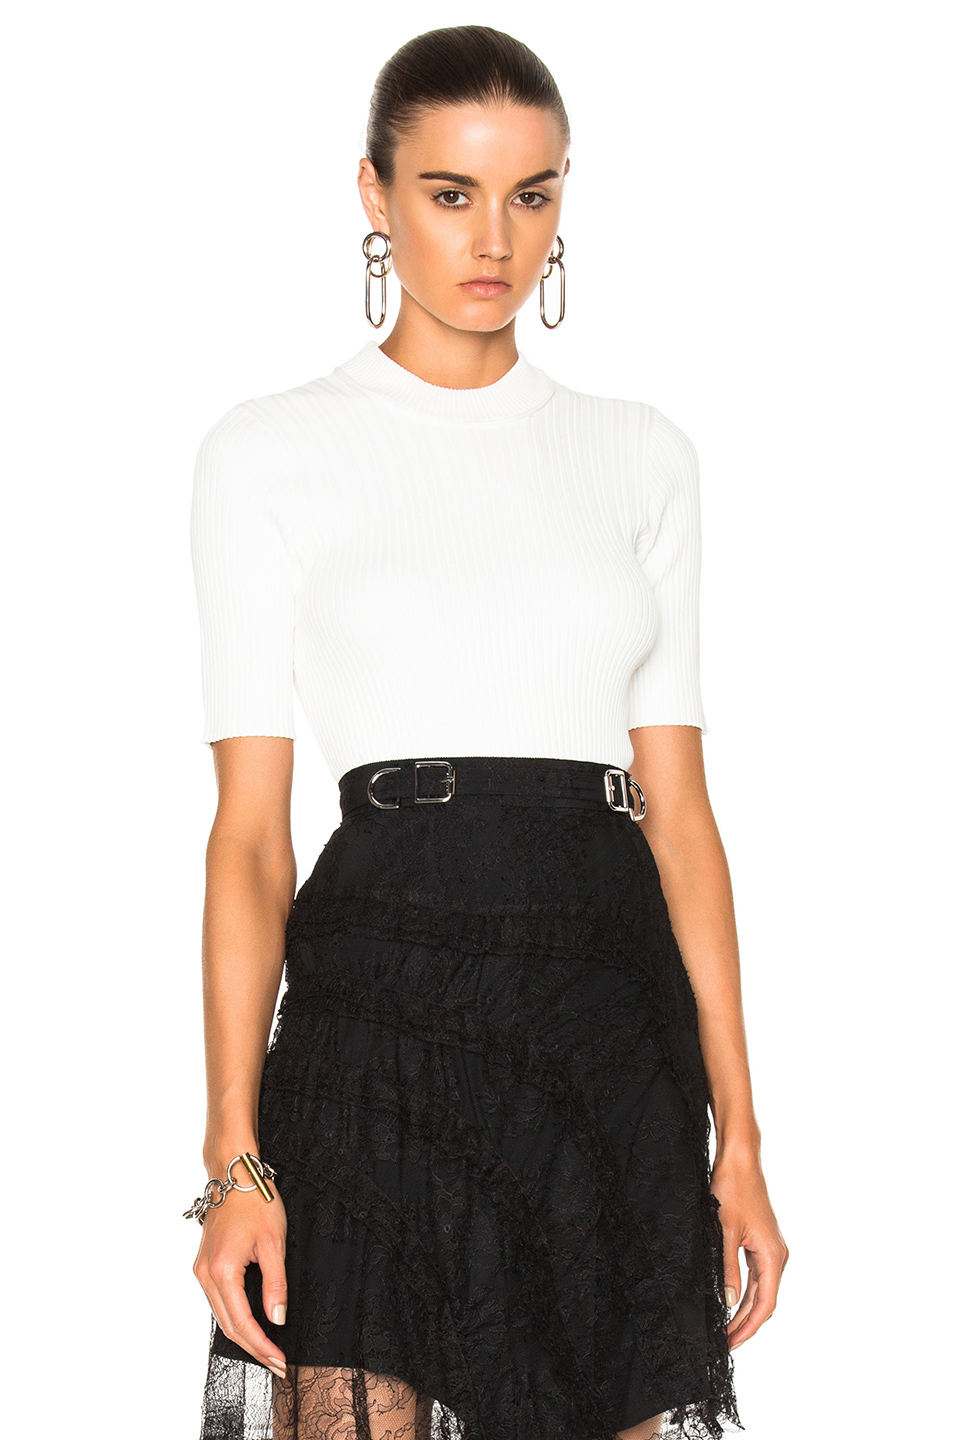 Carven Short Sleeve Top in White